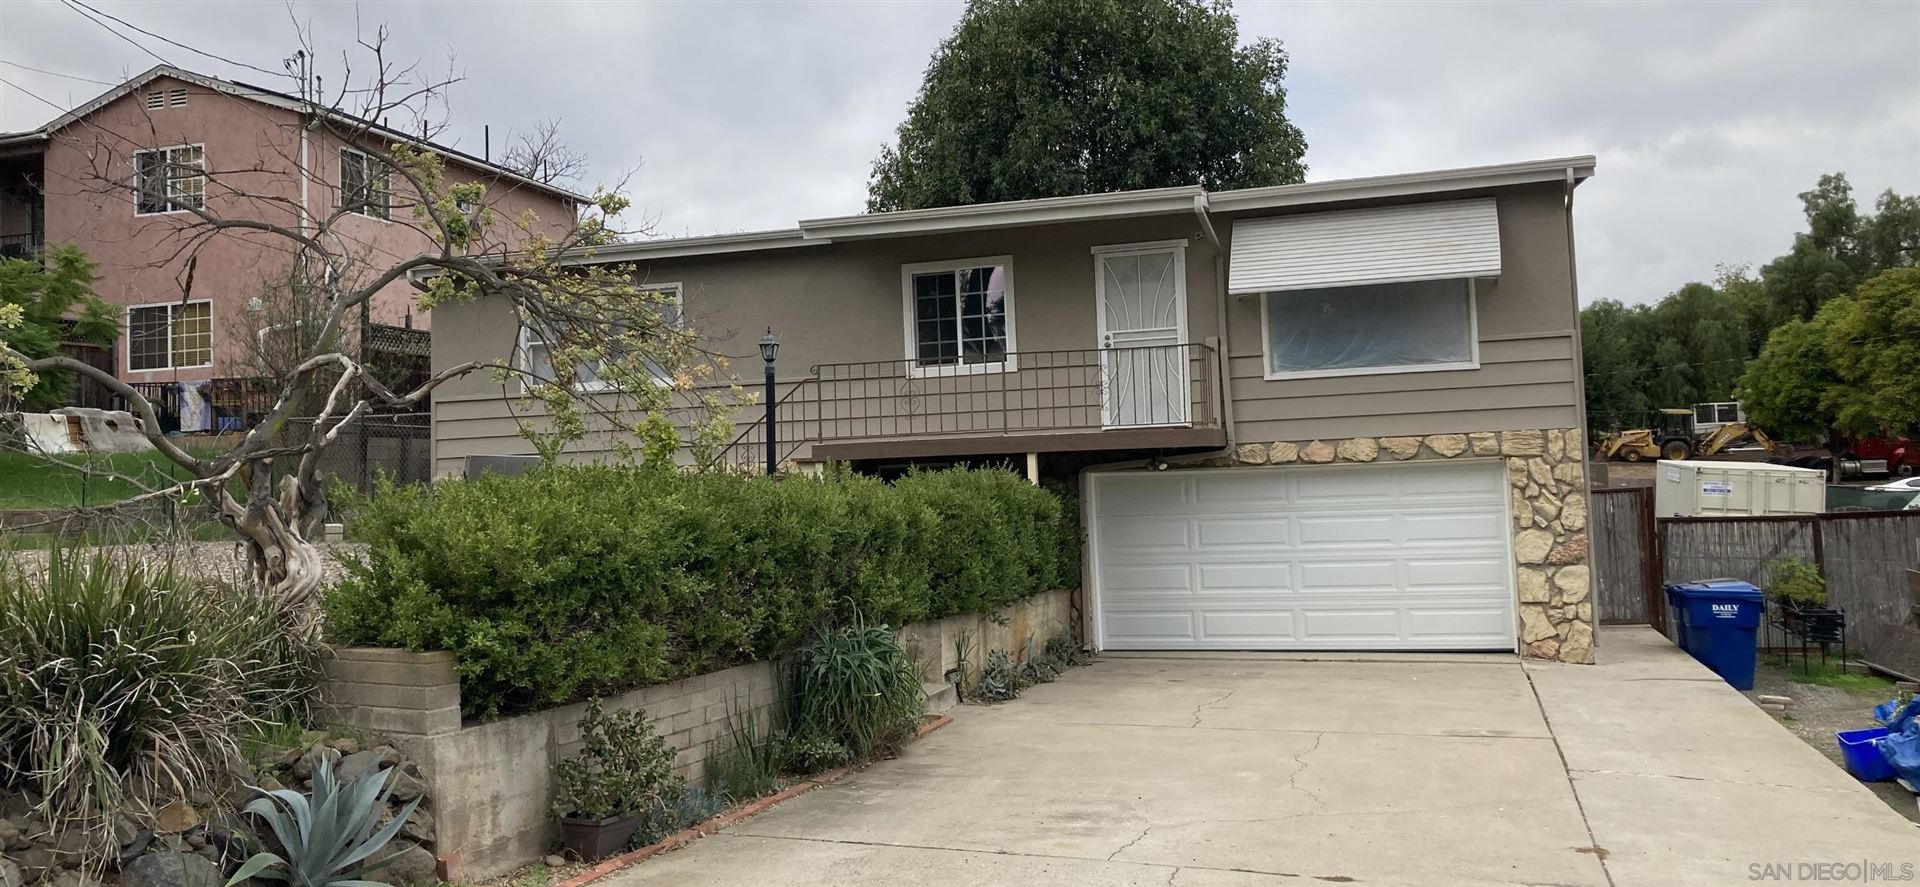 Photo of 3438 Calavo Dr, Spring Valley, CA 91978 (MLS # 210029730)